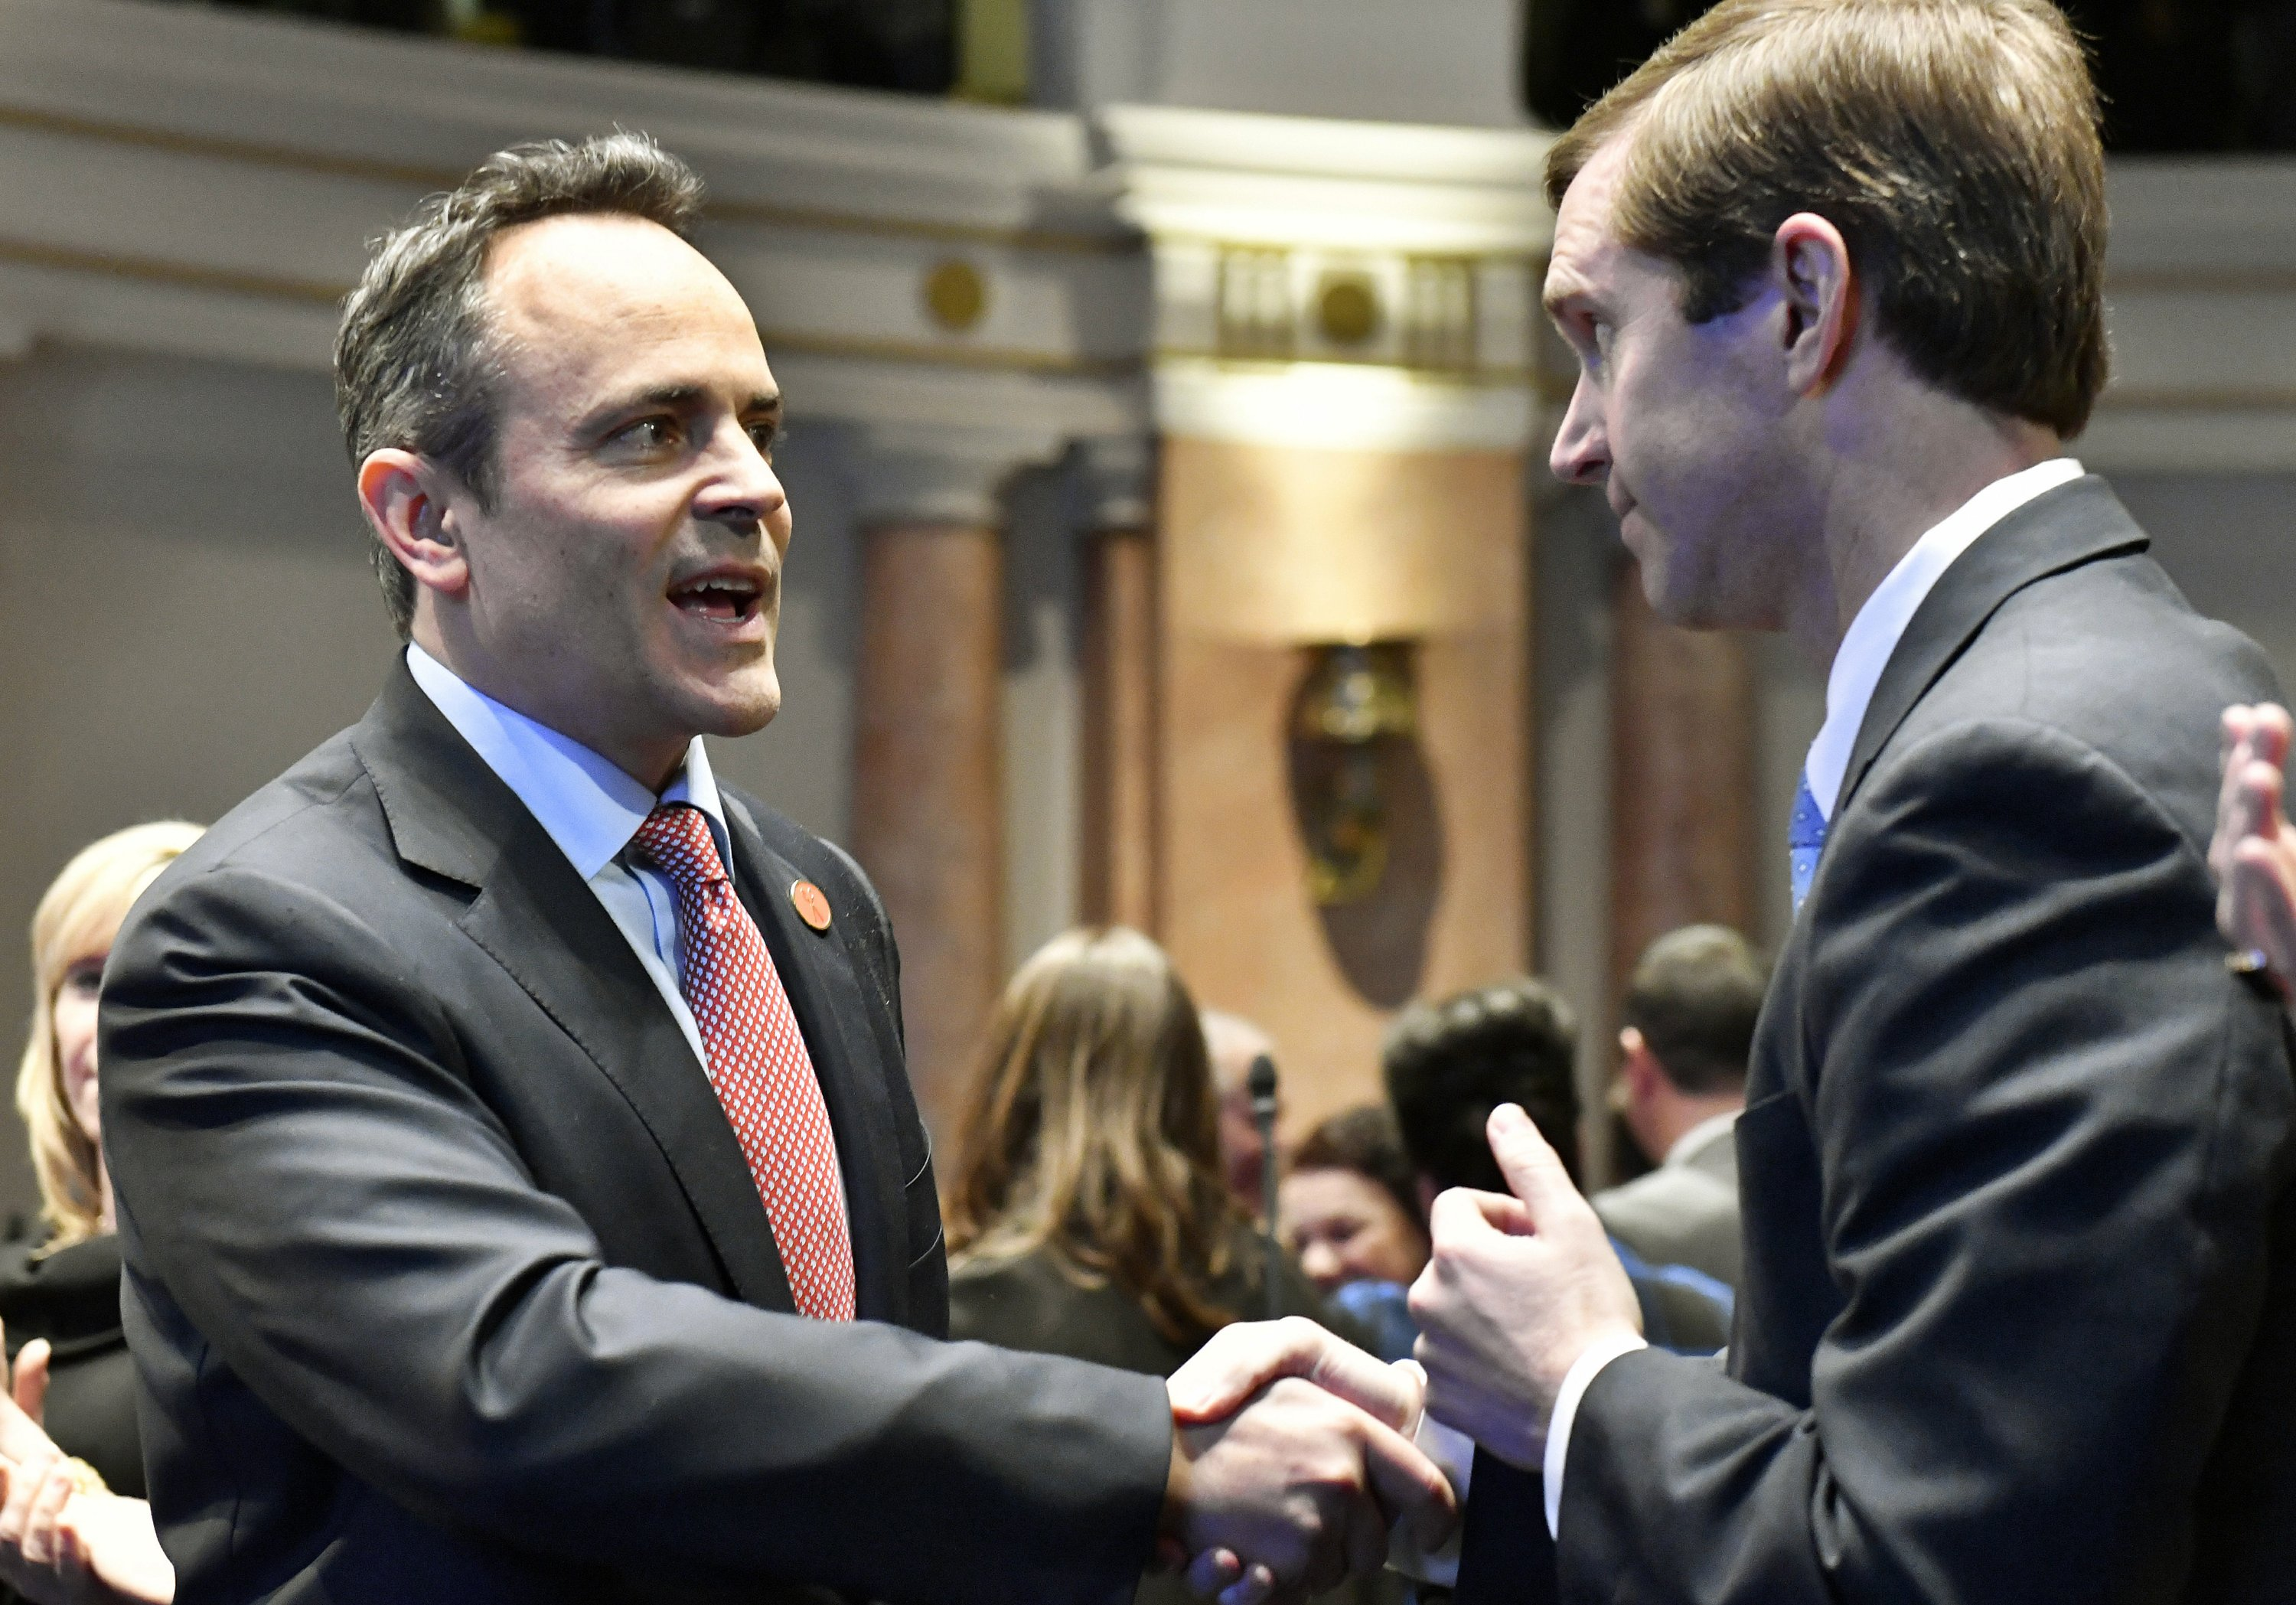 Judge: Lawsuit between Kentucky political rivals can go on